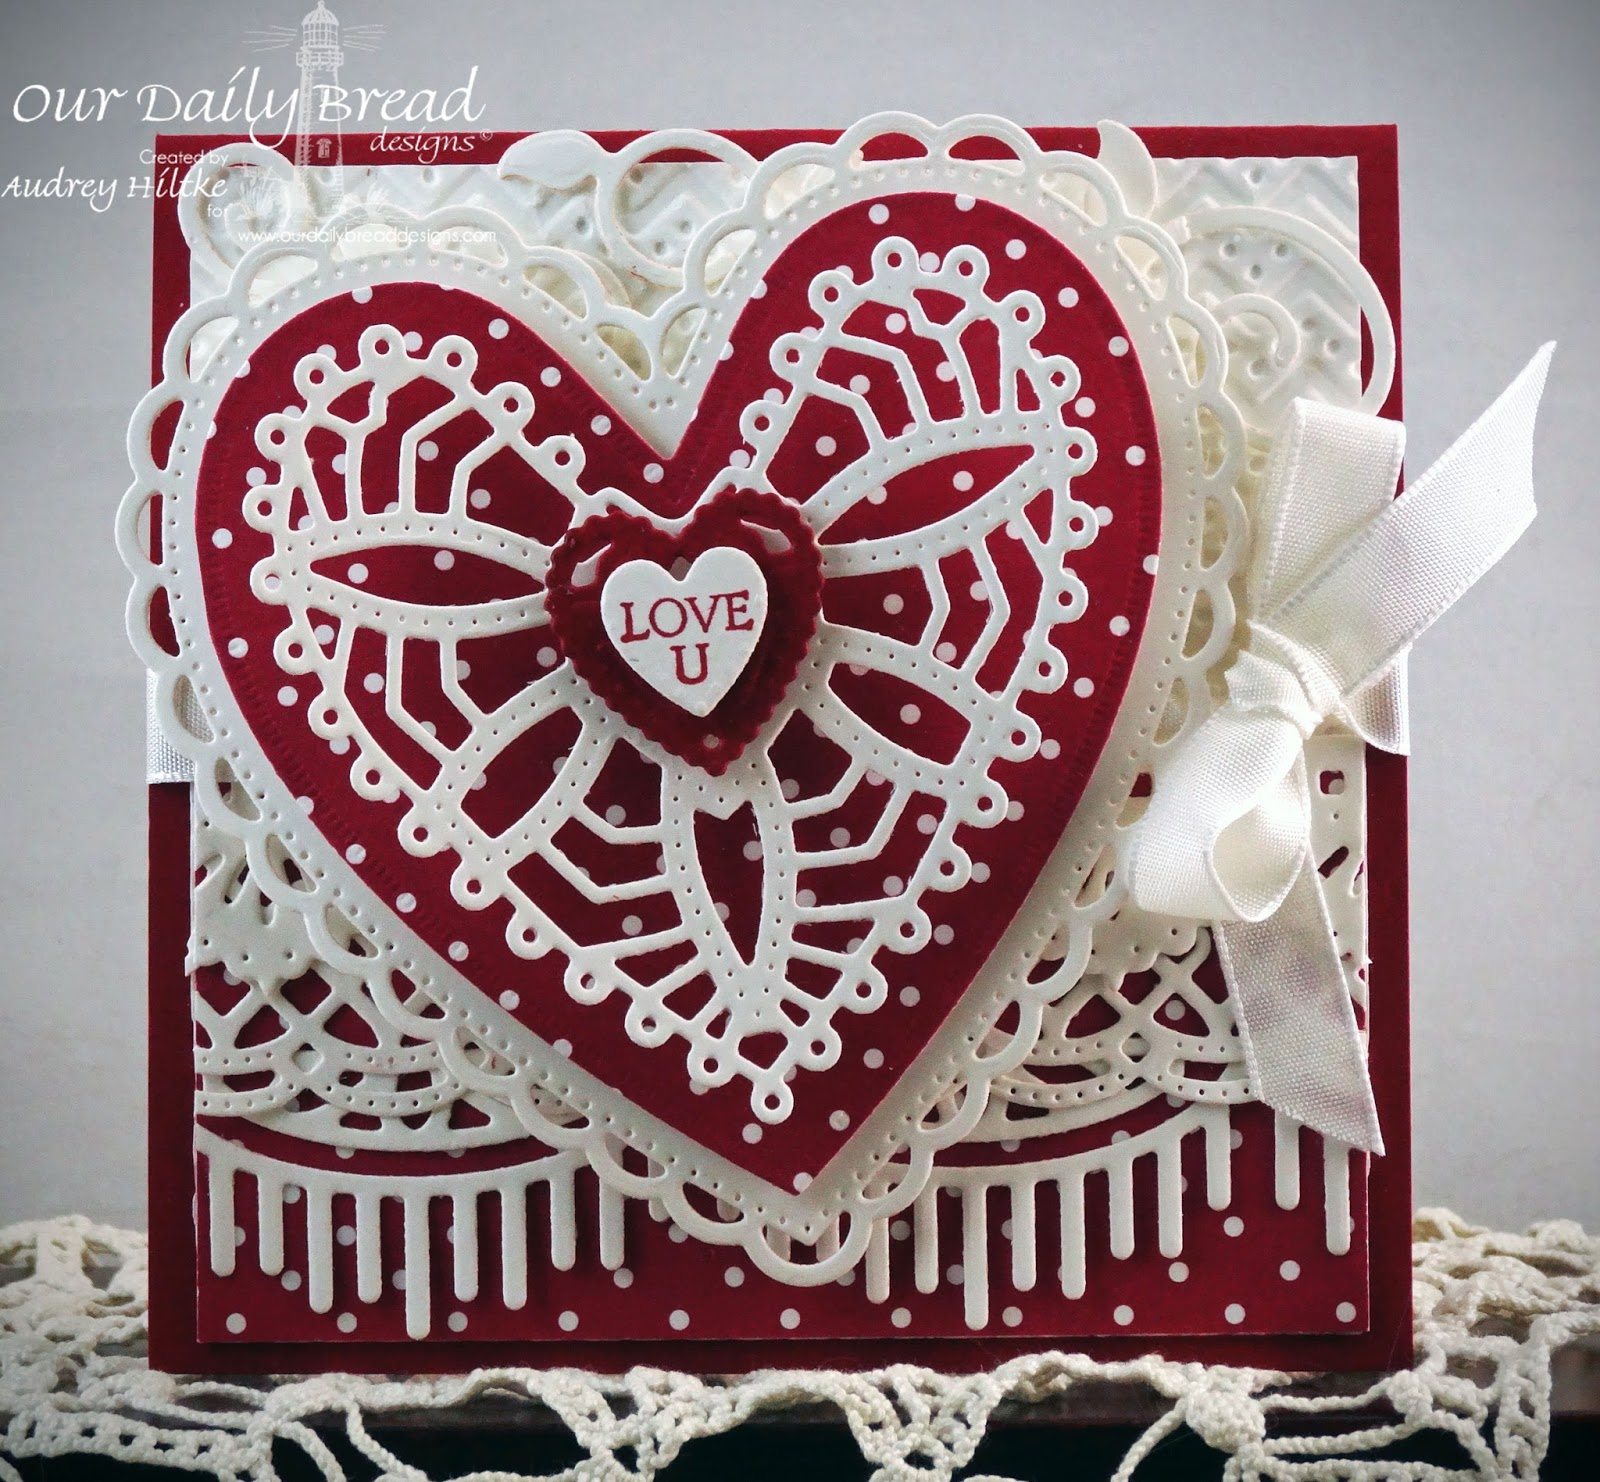 Stamps - Our Daily Bread Designs Be Mine, ODBD Custom Ornate Hearts Die, ODBD Custom Fancy Foliage Dies, ODBD Custom Beautiful Borders Dies